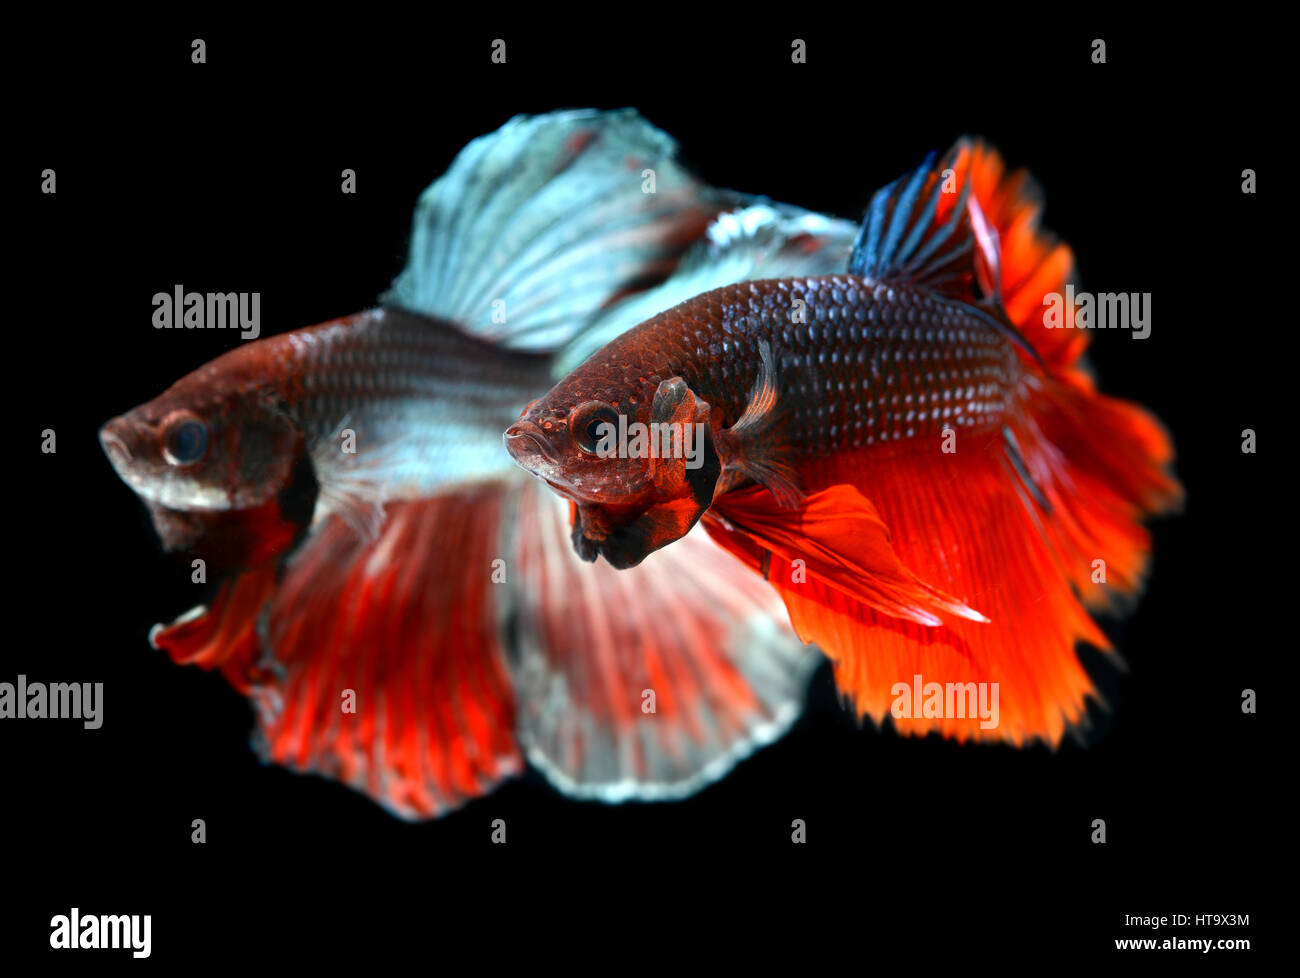 Fighting Fish Stock Photos & Fighting Fish Stock Images - Page 3 - Alamy